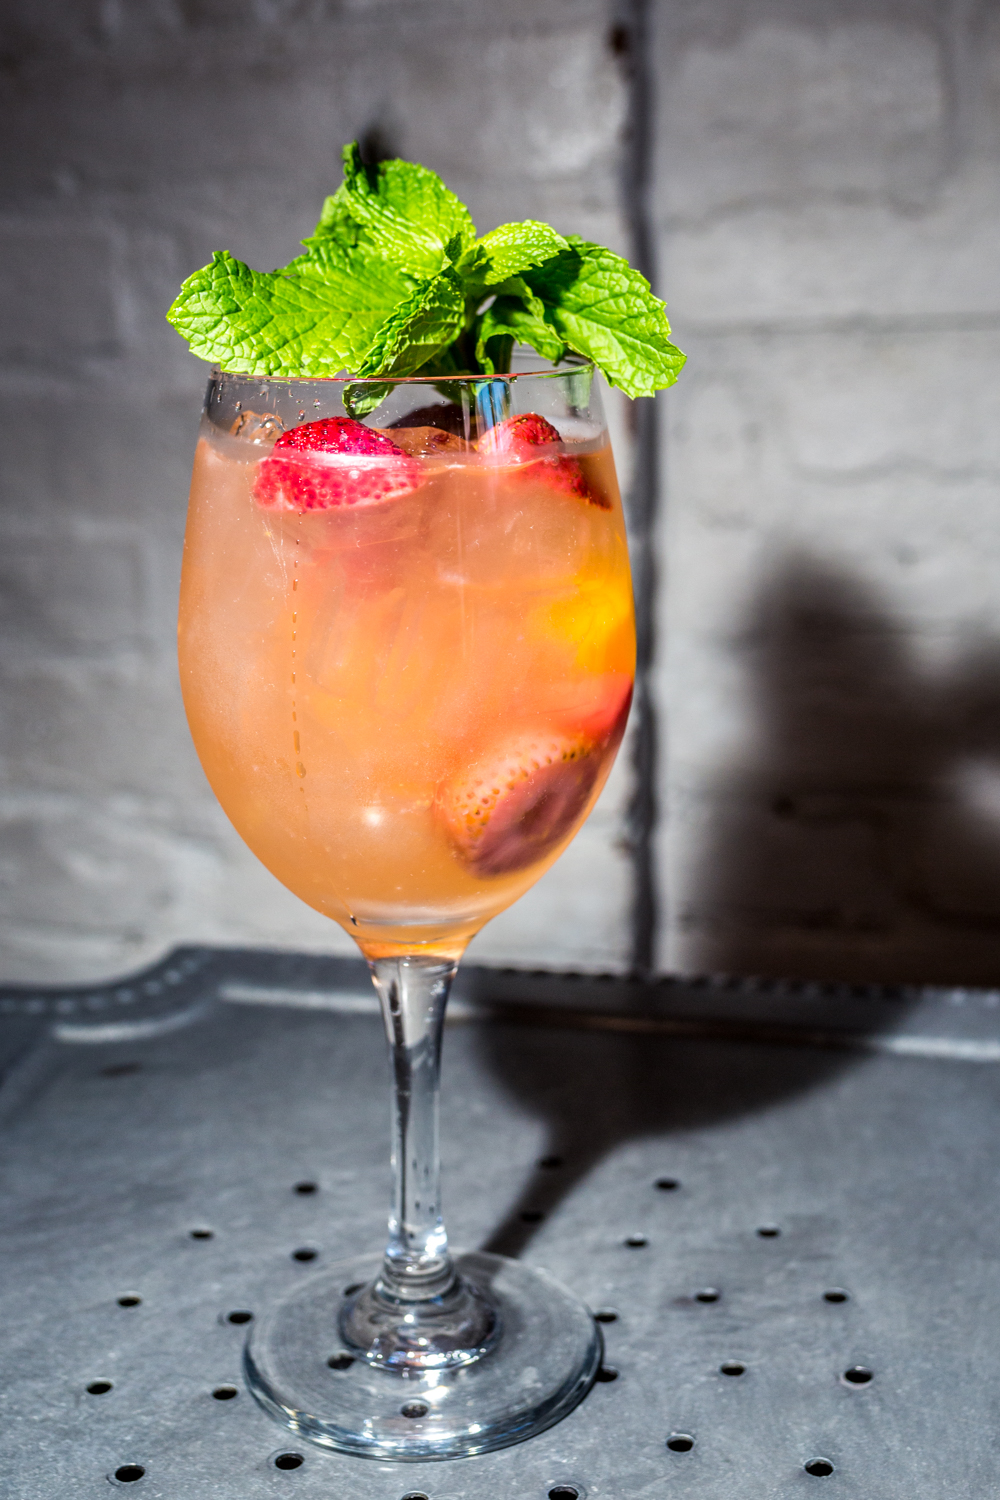 Sangria Blanca: white wine, Cointreau, and seasonal fruit / Image: Catherine Viox{ }// Published: 9.30.19